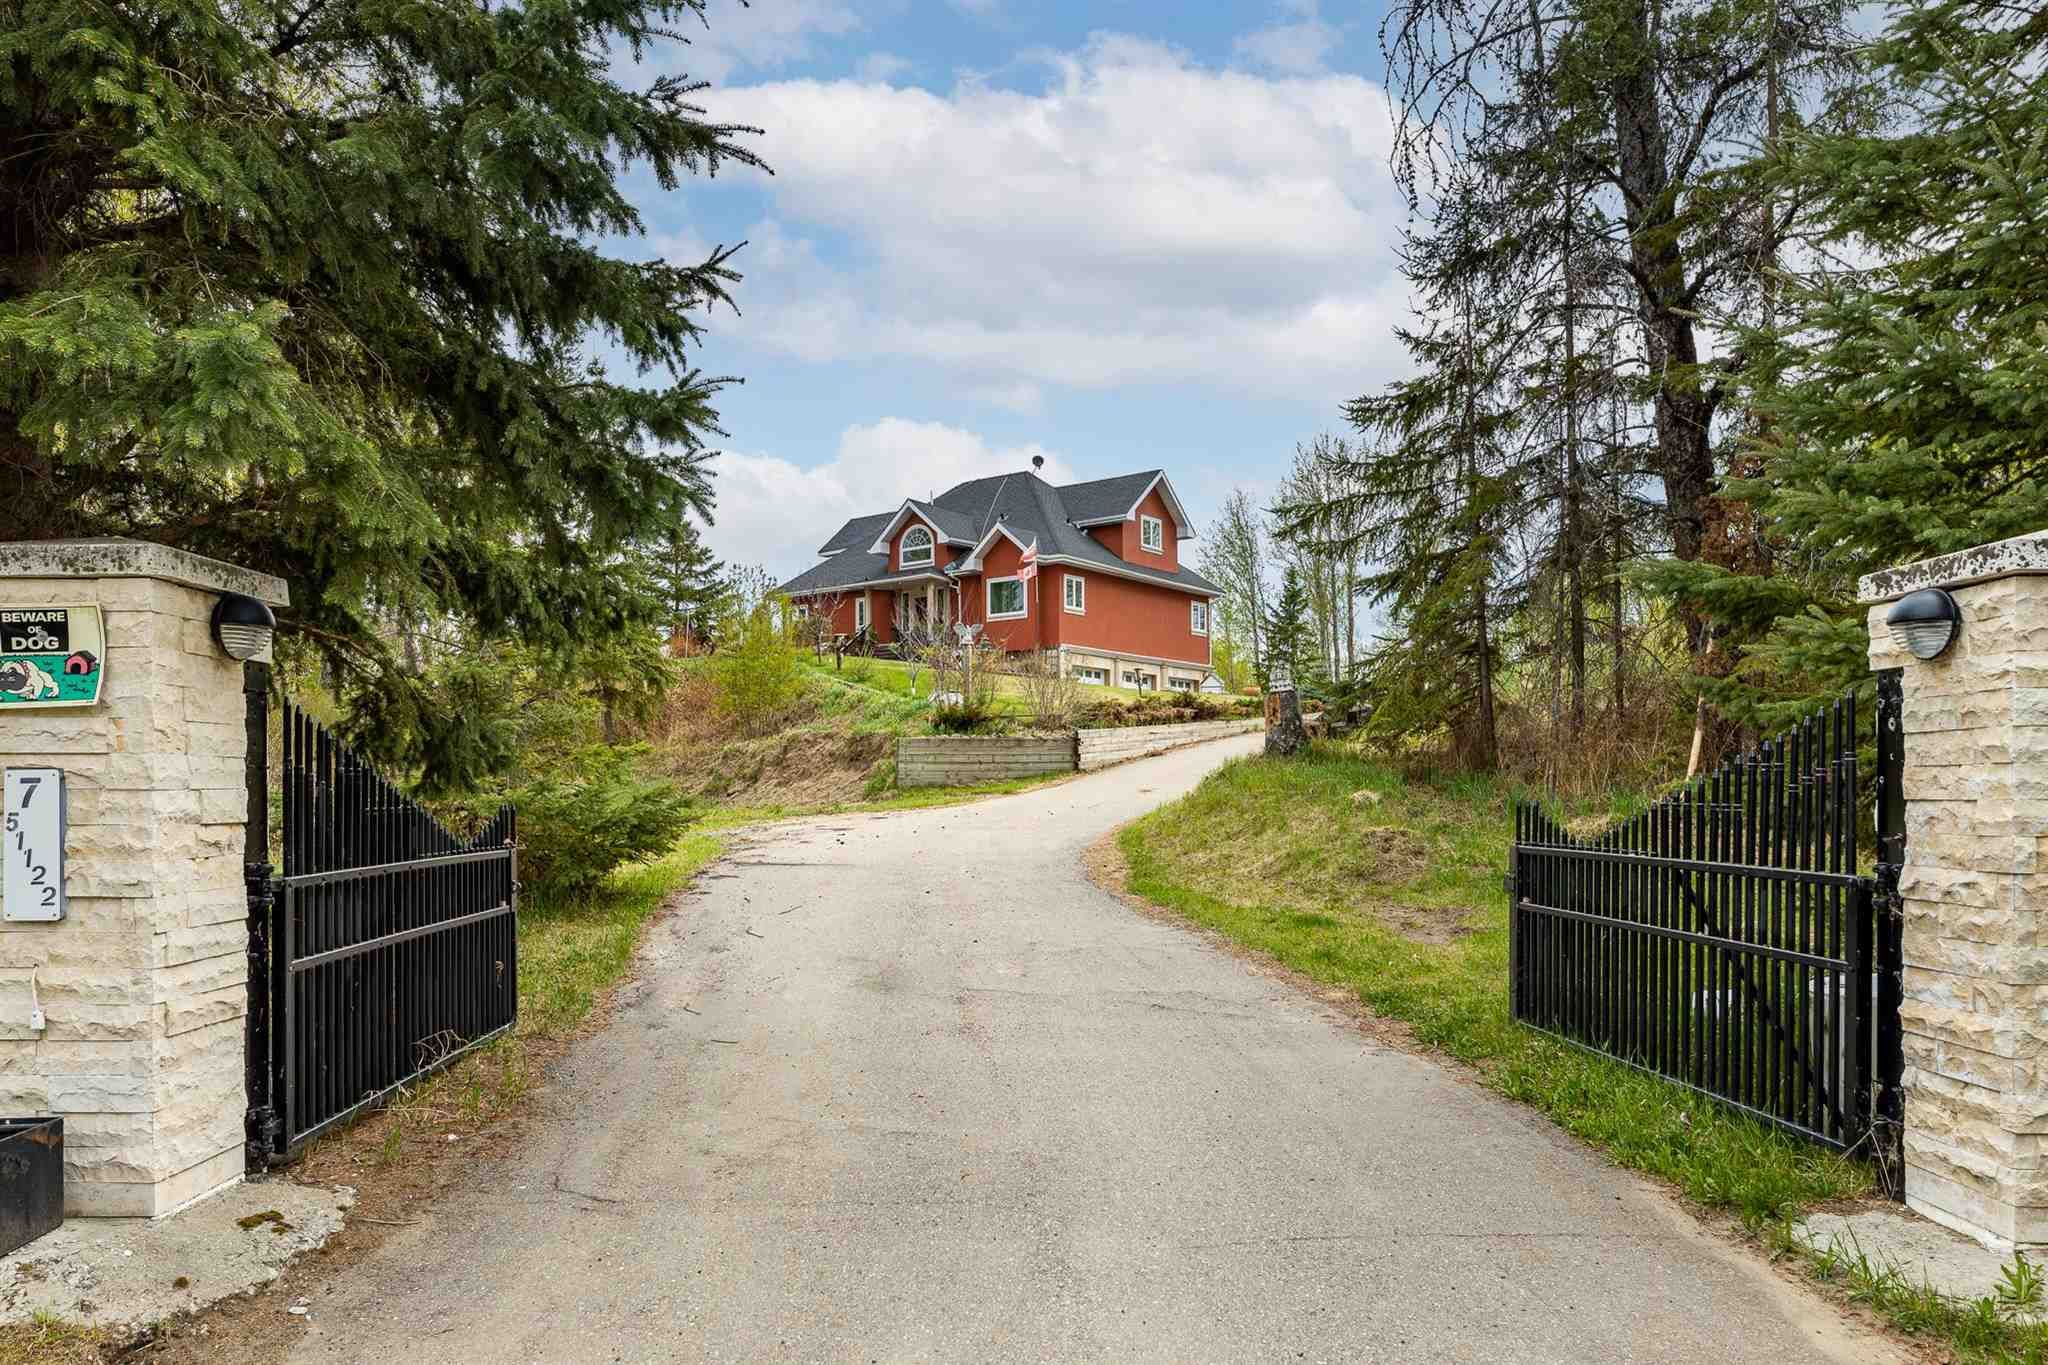 Main Photo: 7 51122 RGE RD 265: Rural Parkland County House for sale : MLS®# E4246128